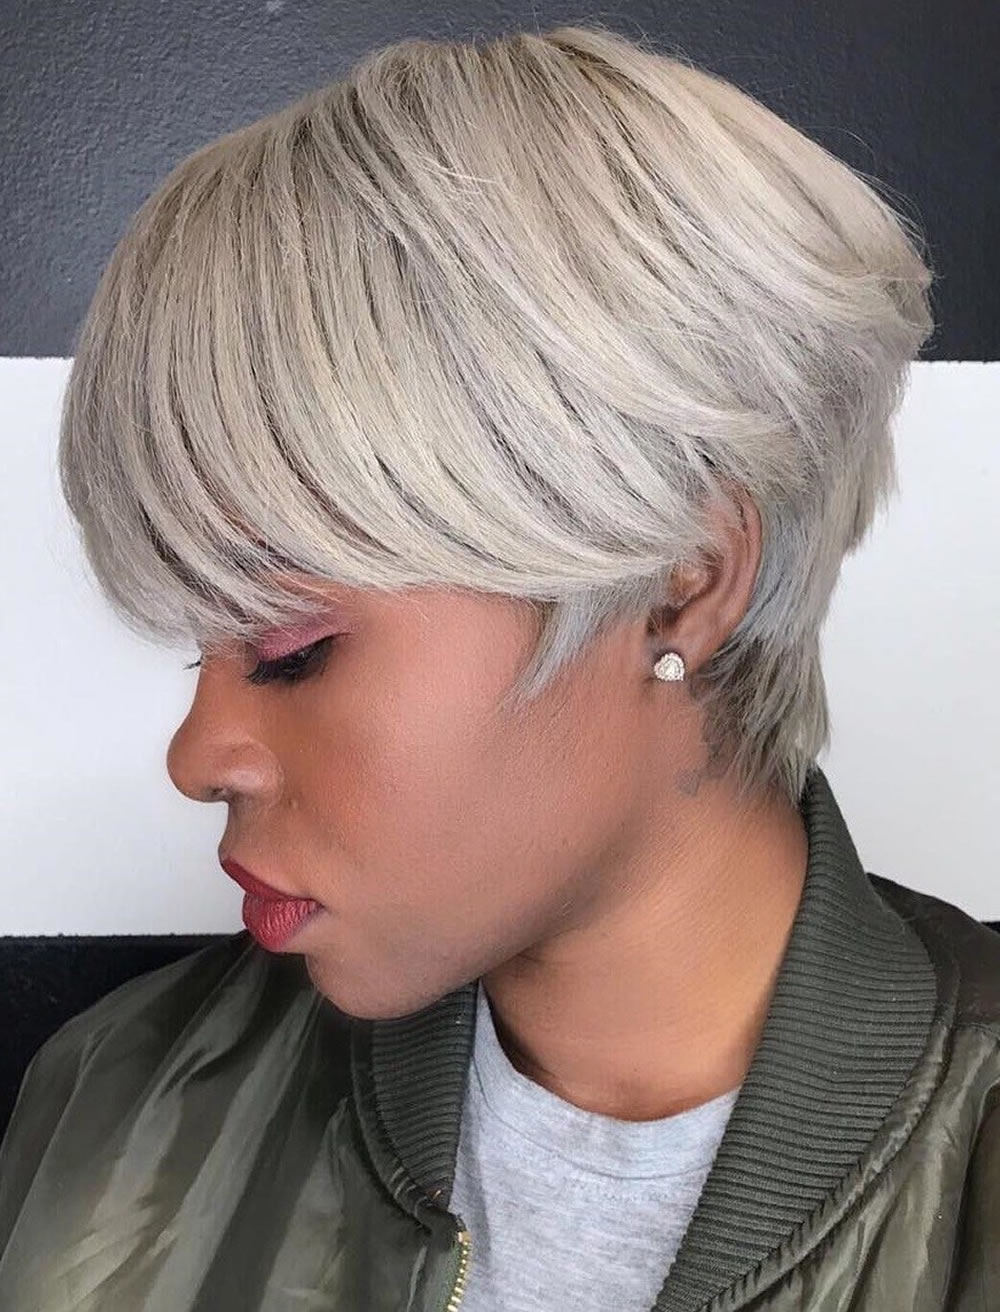 Grey Short Haircuts For African American Black Women – Hairstyles With Regard To Short Hairstyles For Black Women With Gray Hair (Gallery 18 of 25)